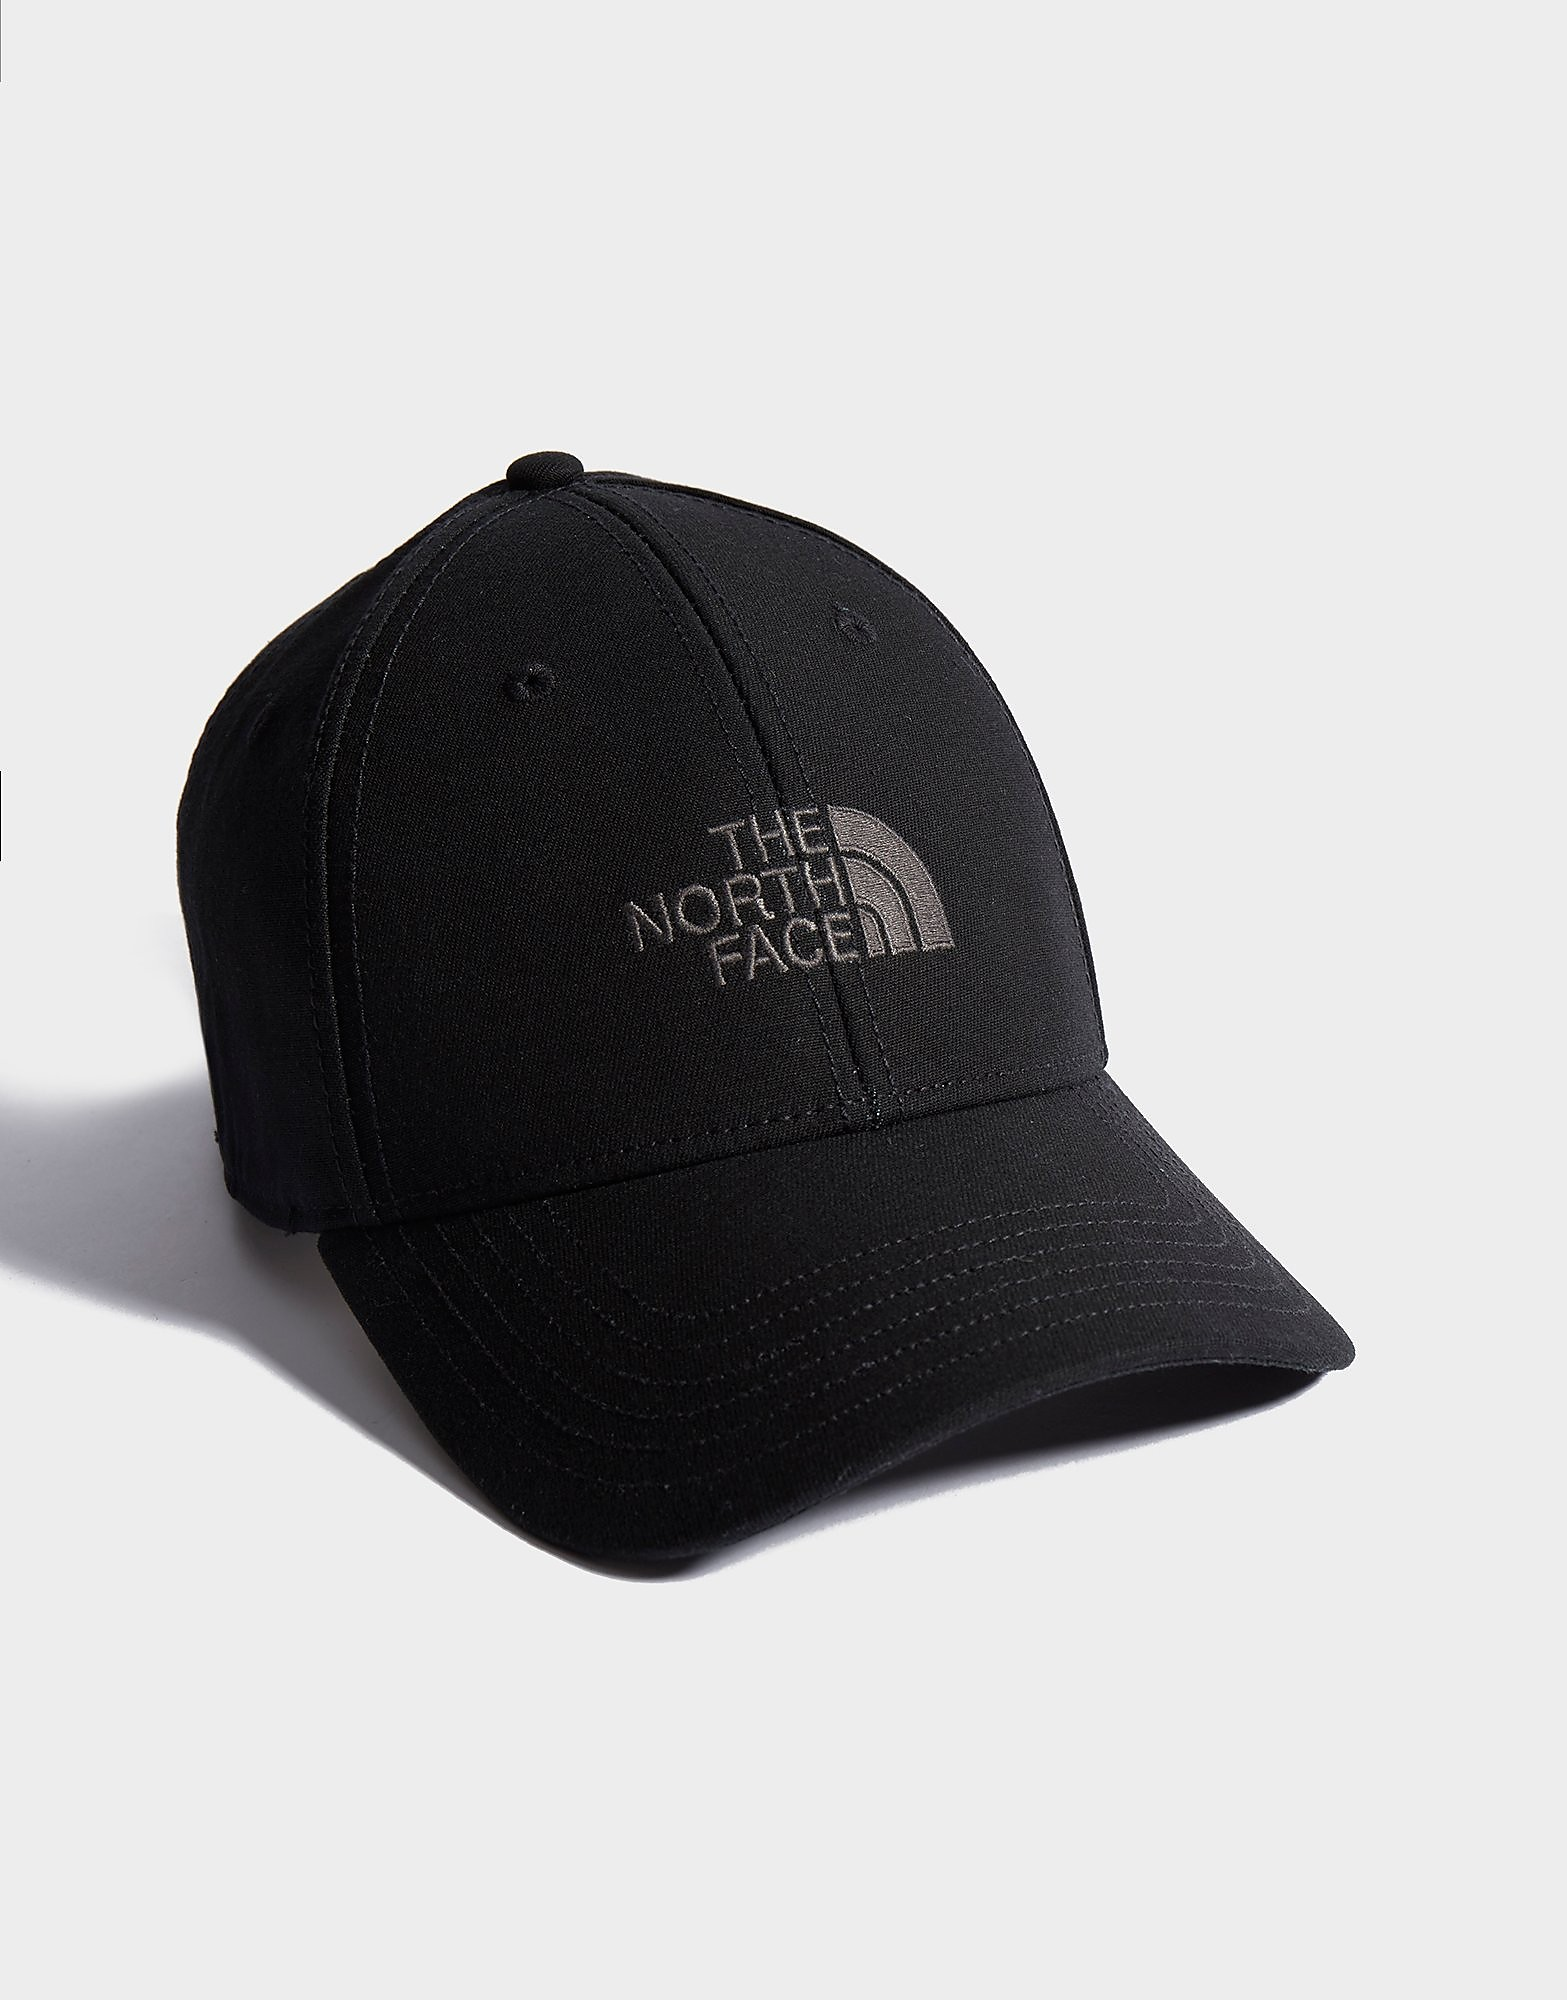 The North Face Classic Cap